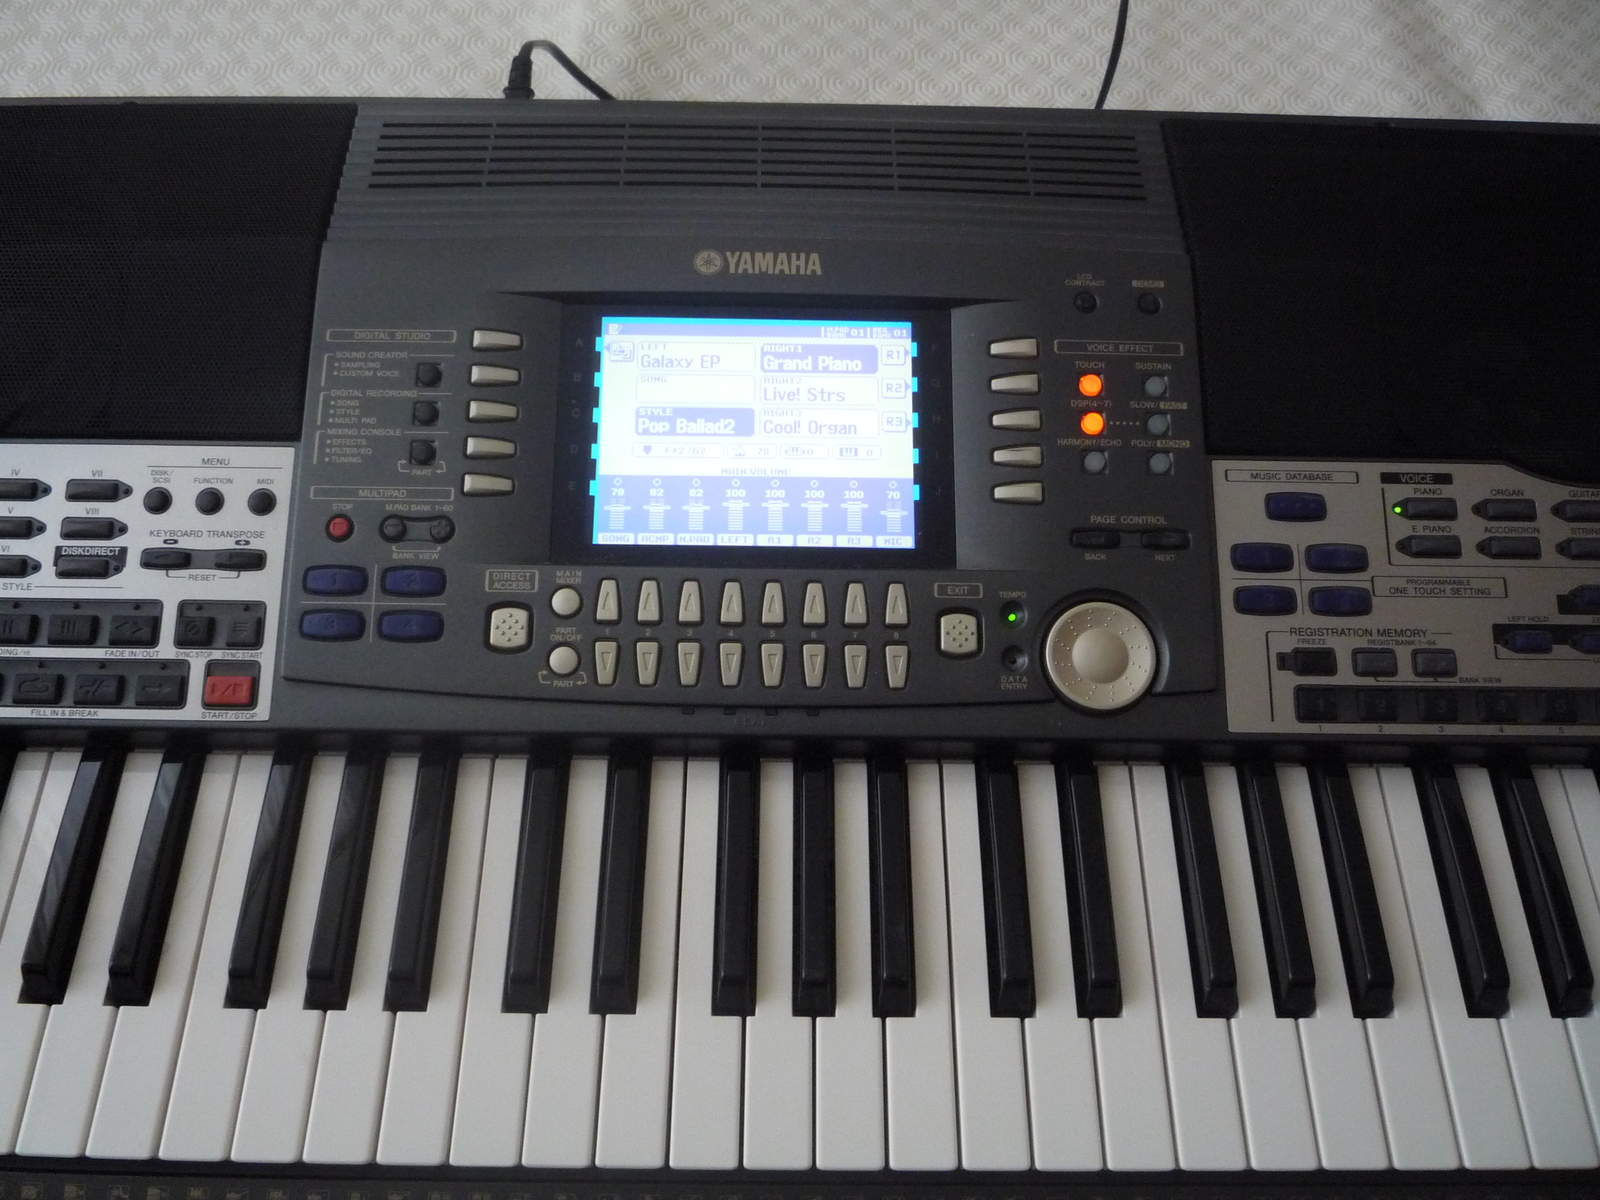 Yamaha psr 9000 image 175336 audiofanzine for Yamaha professional keyboard price